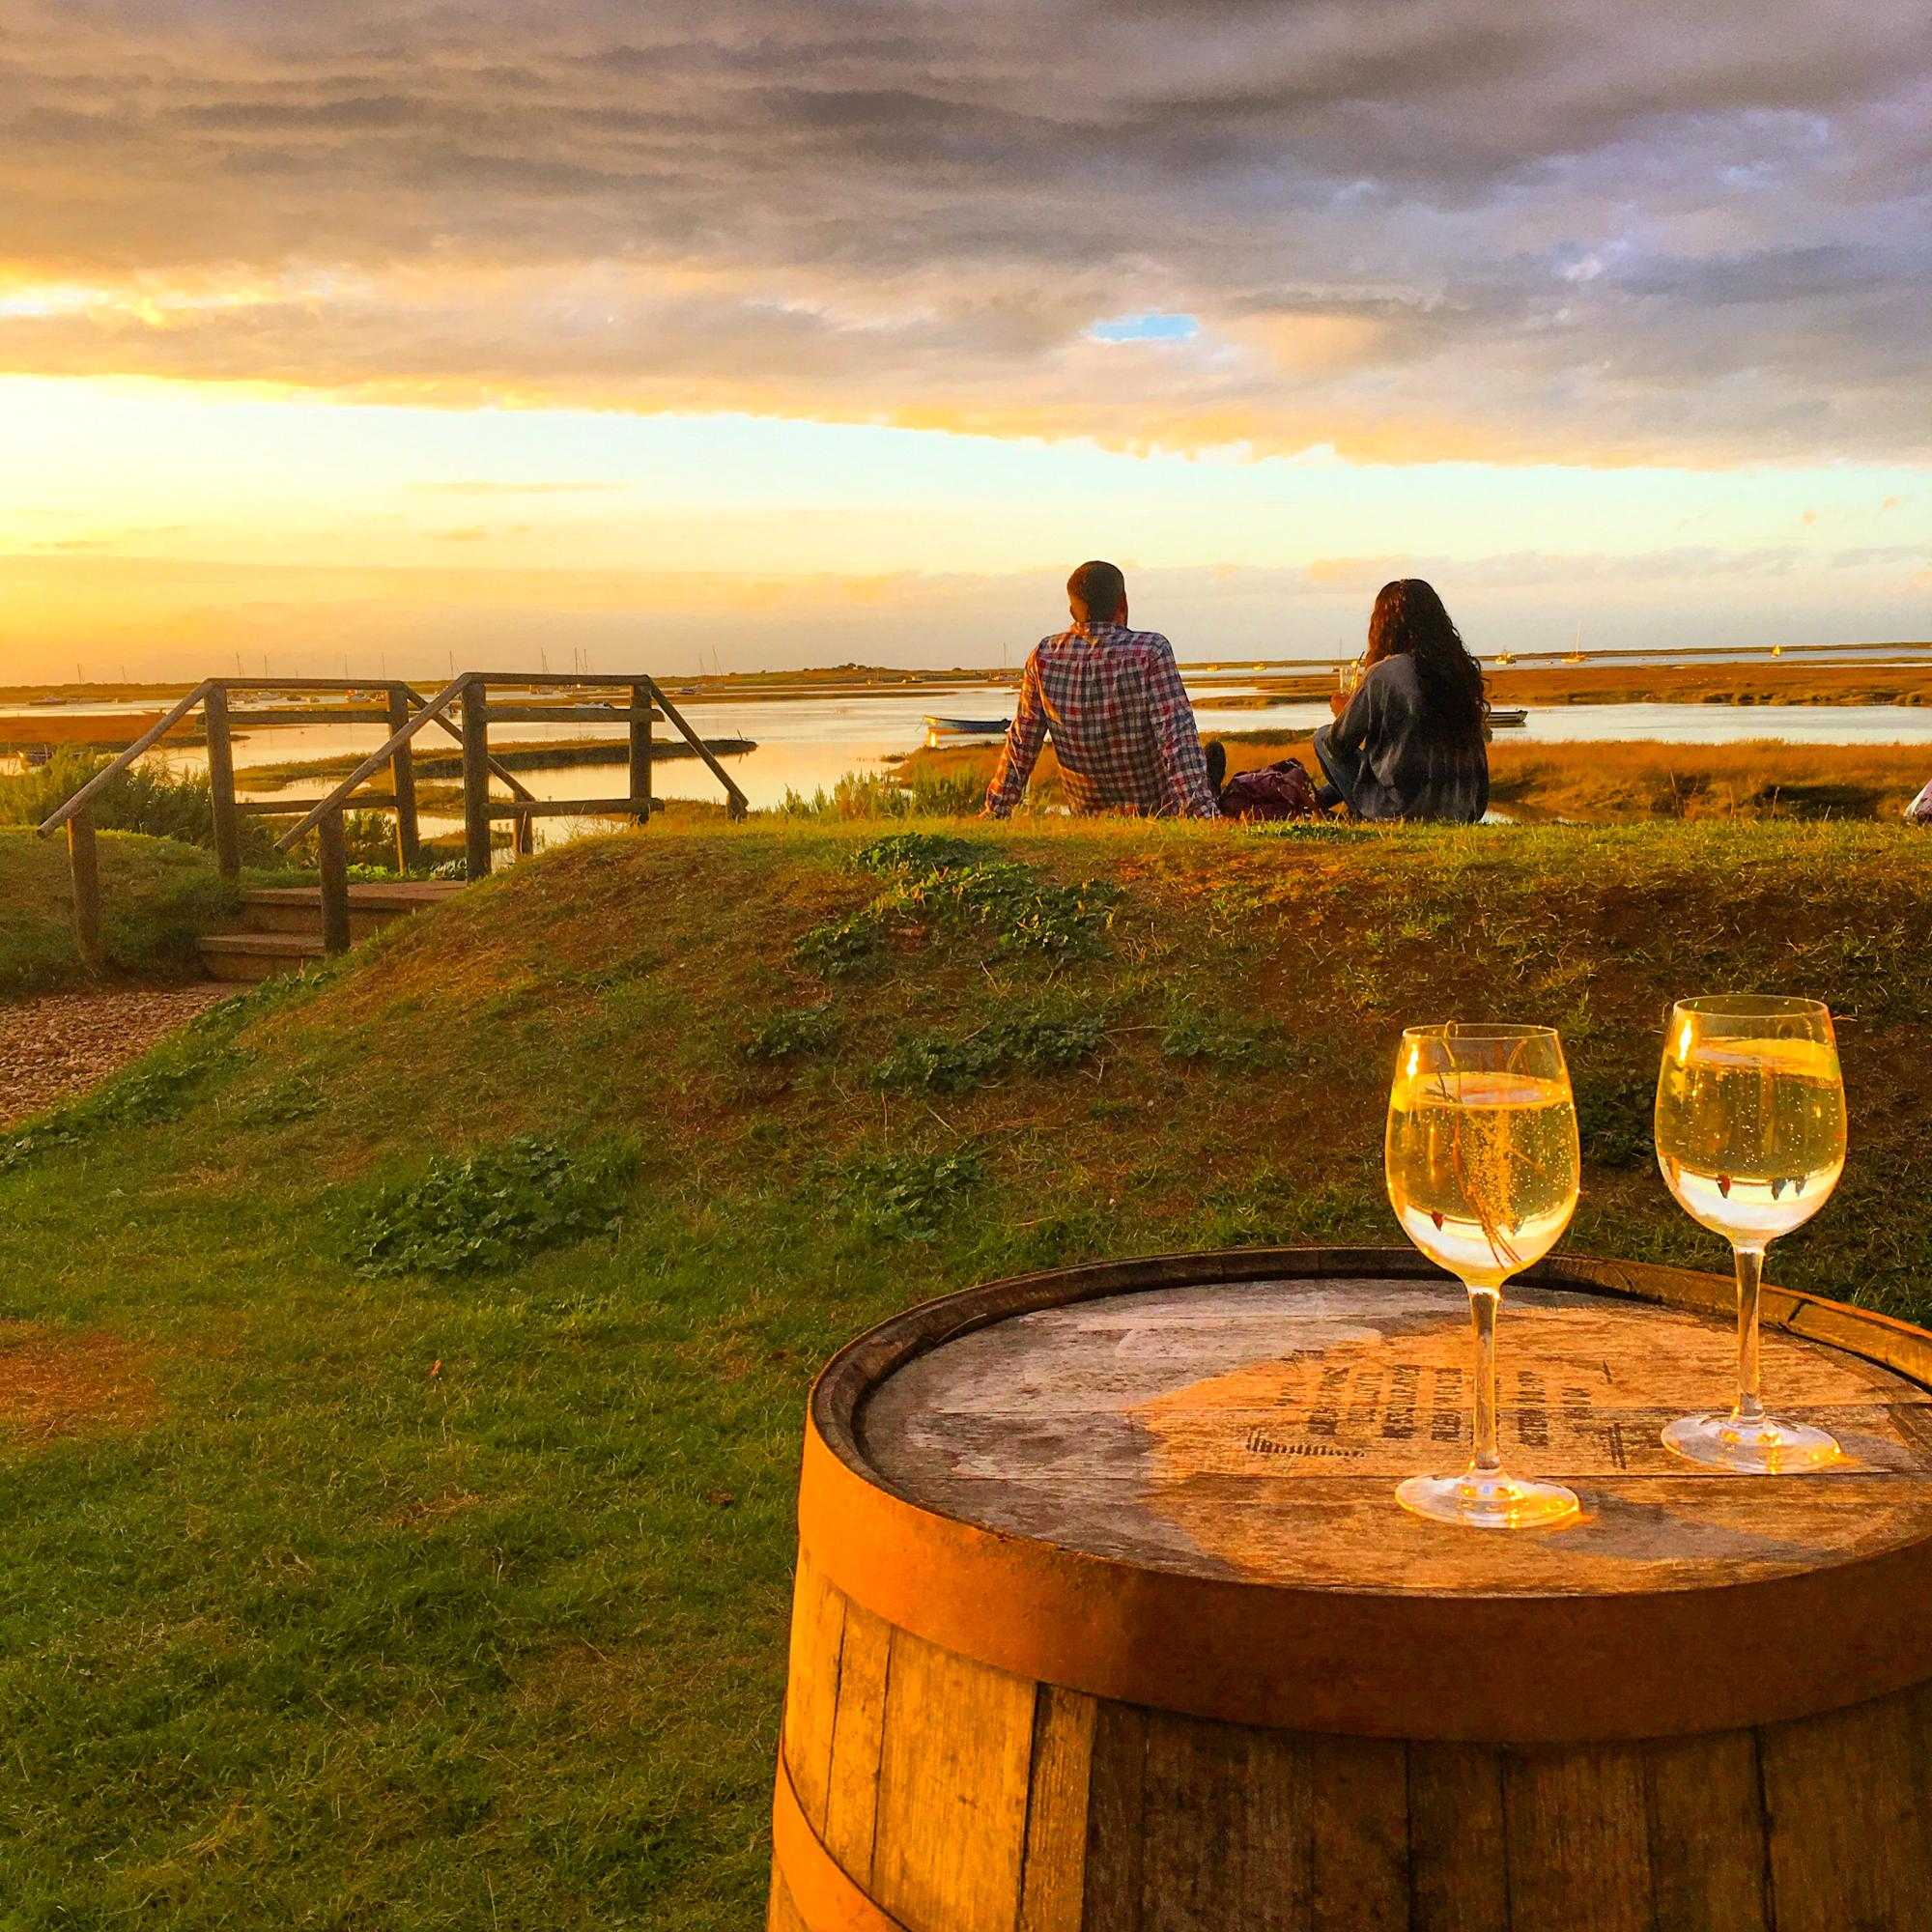 Win a 1-Night Stay at The White Horse!